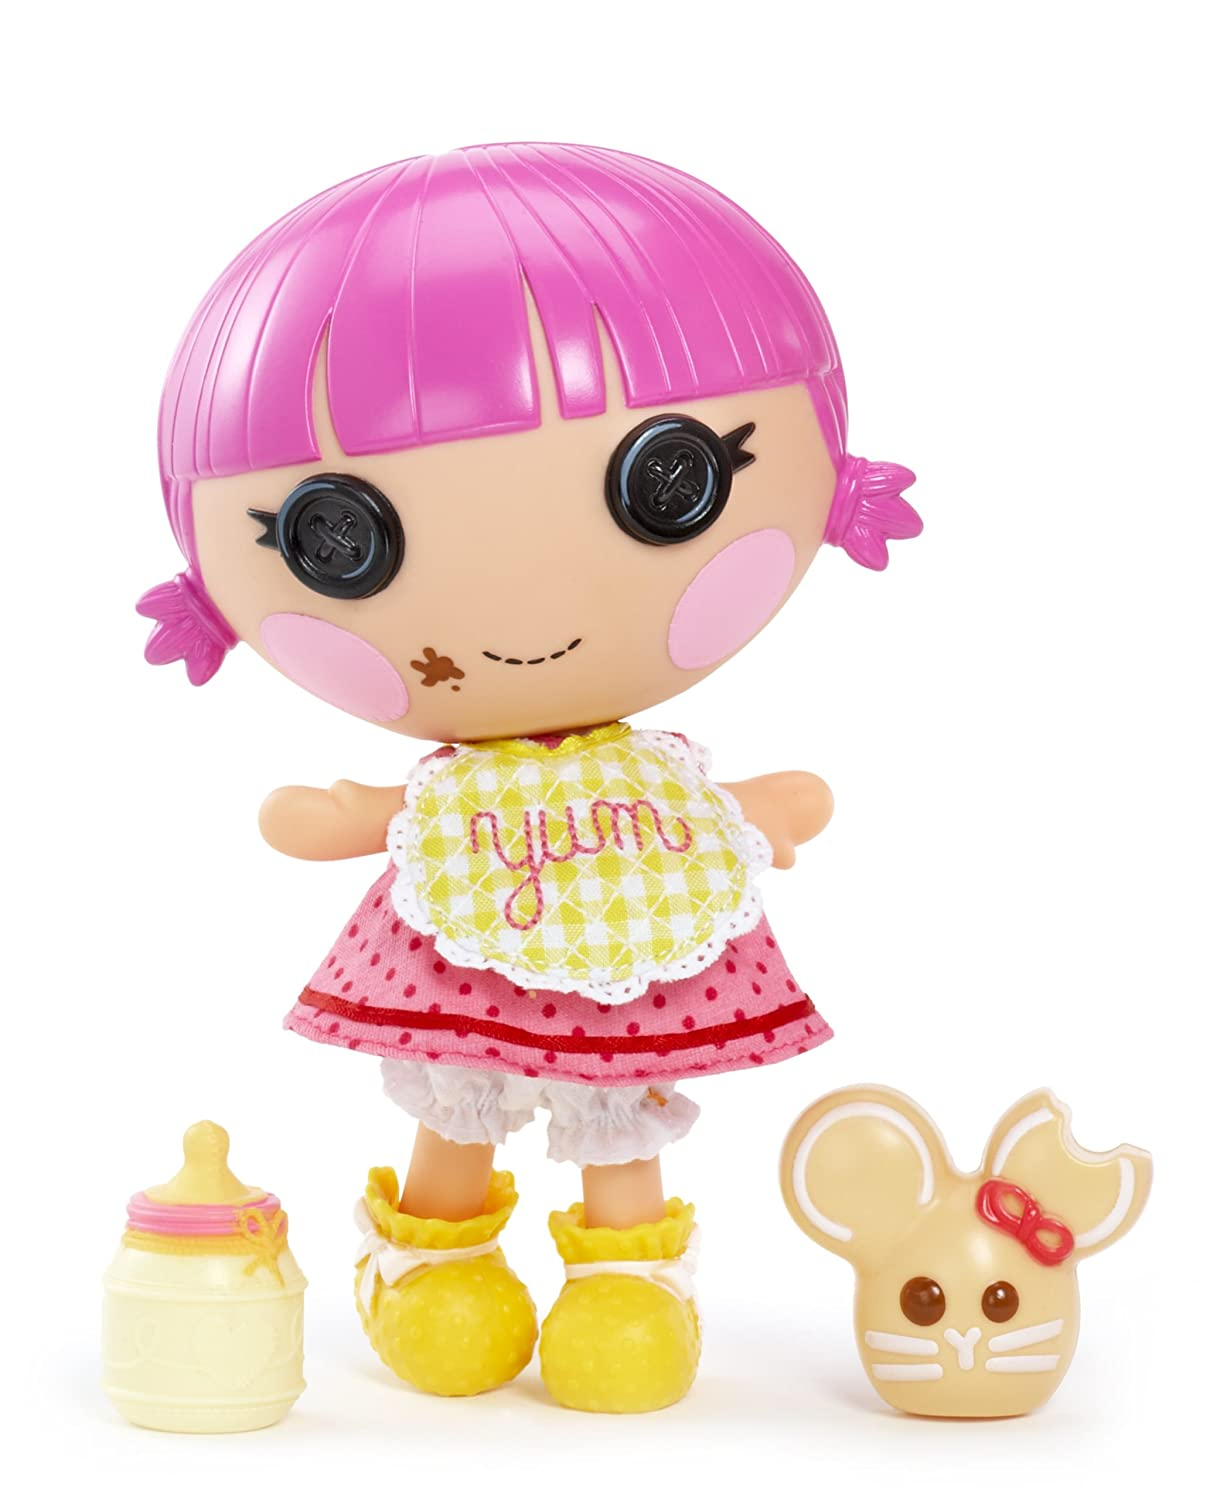 Lalaloopsy Littles Doll - Sprinkle Spice Cookie